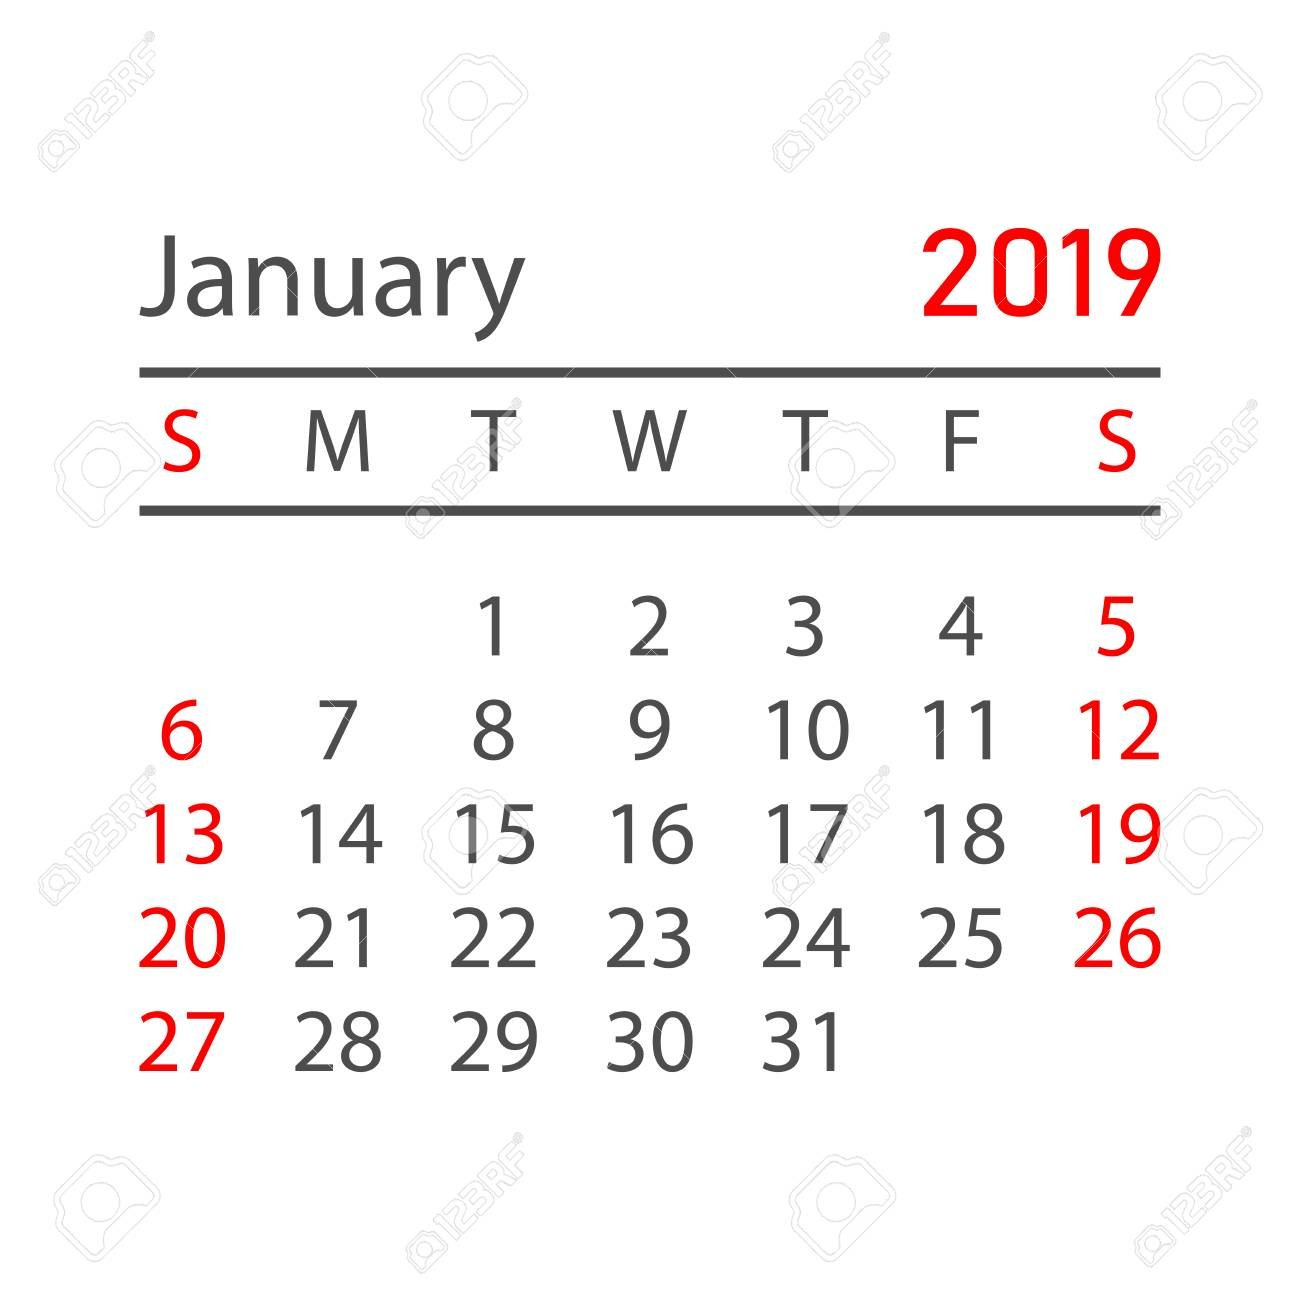 Calendar January 2019 Year In Simple Style. Calendar Planner R 2019 Calendar